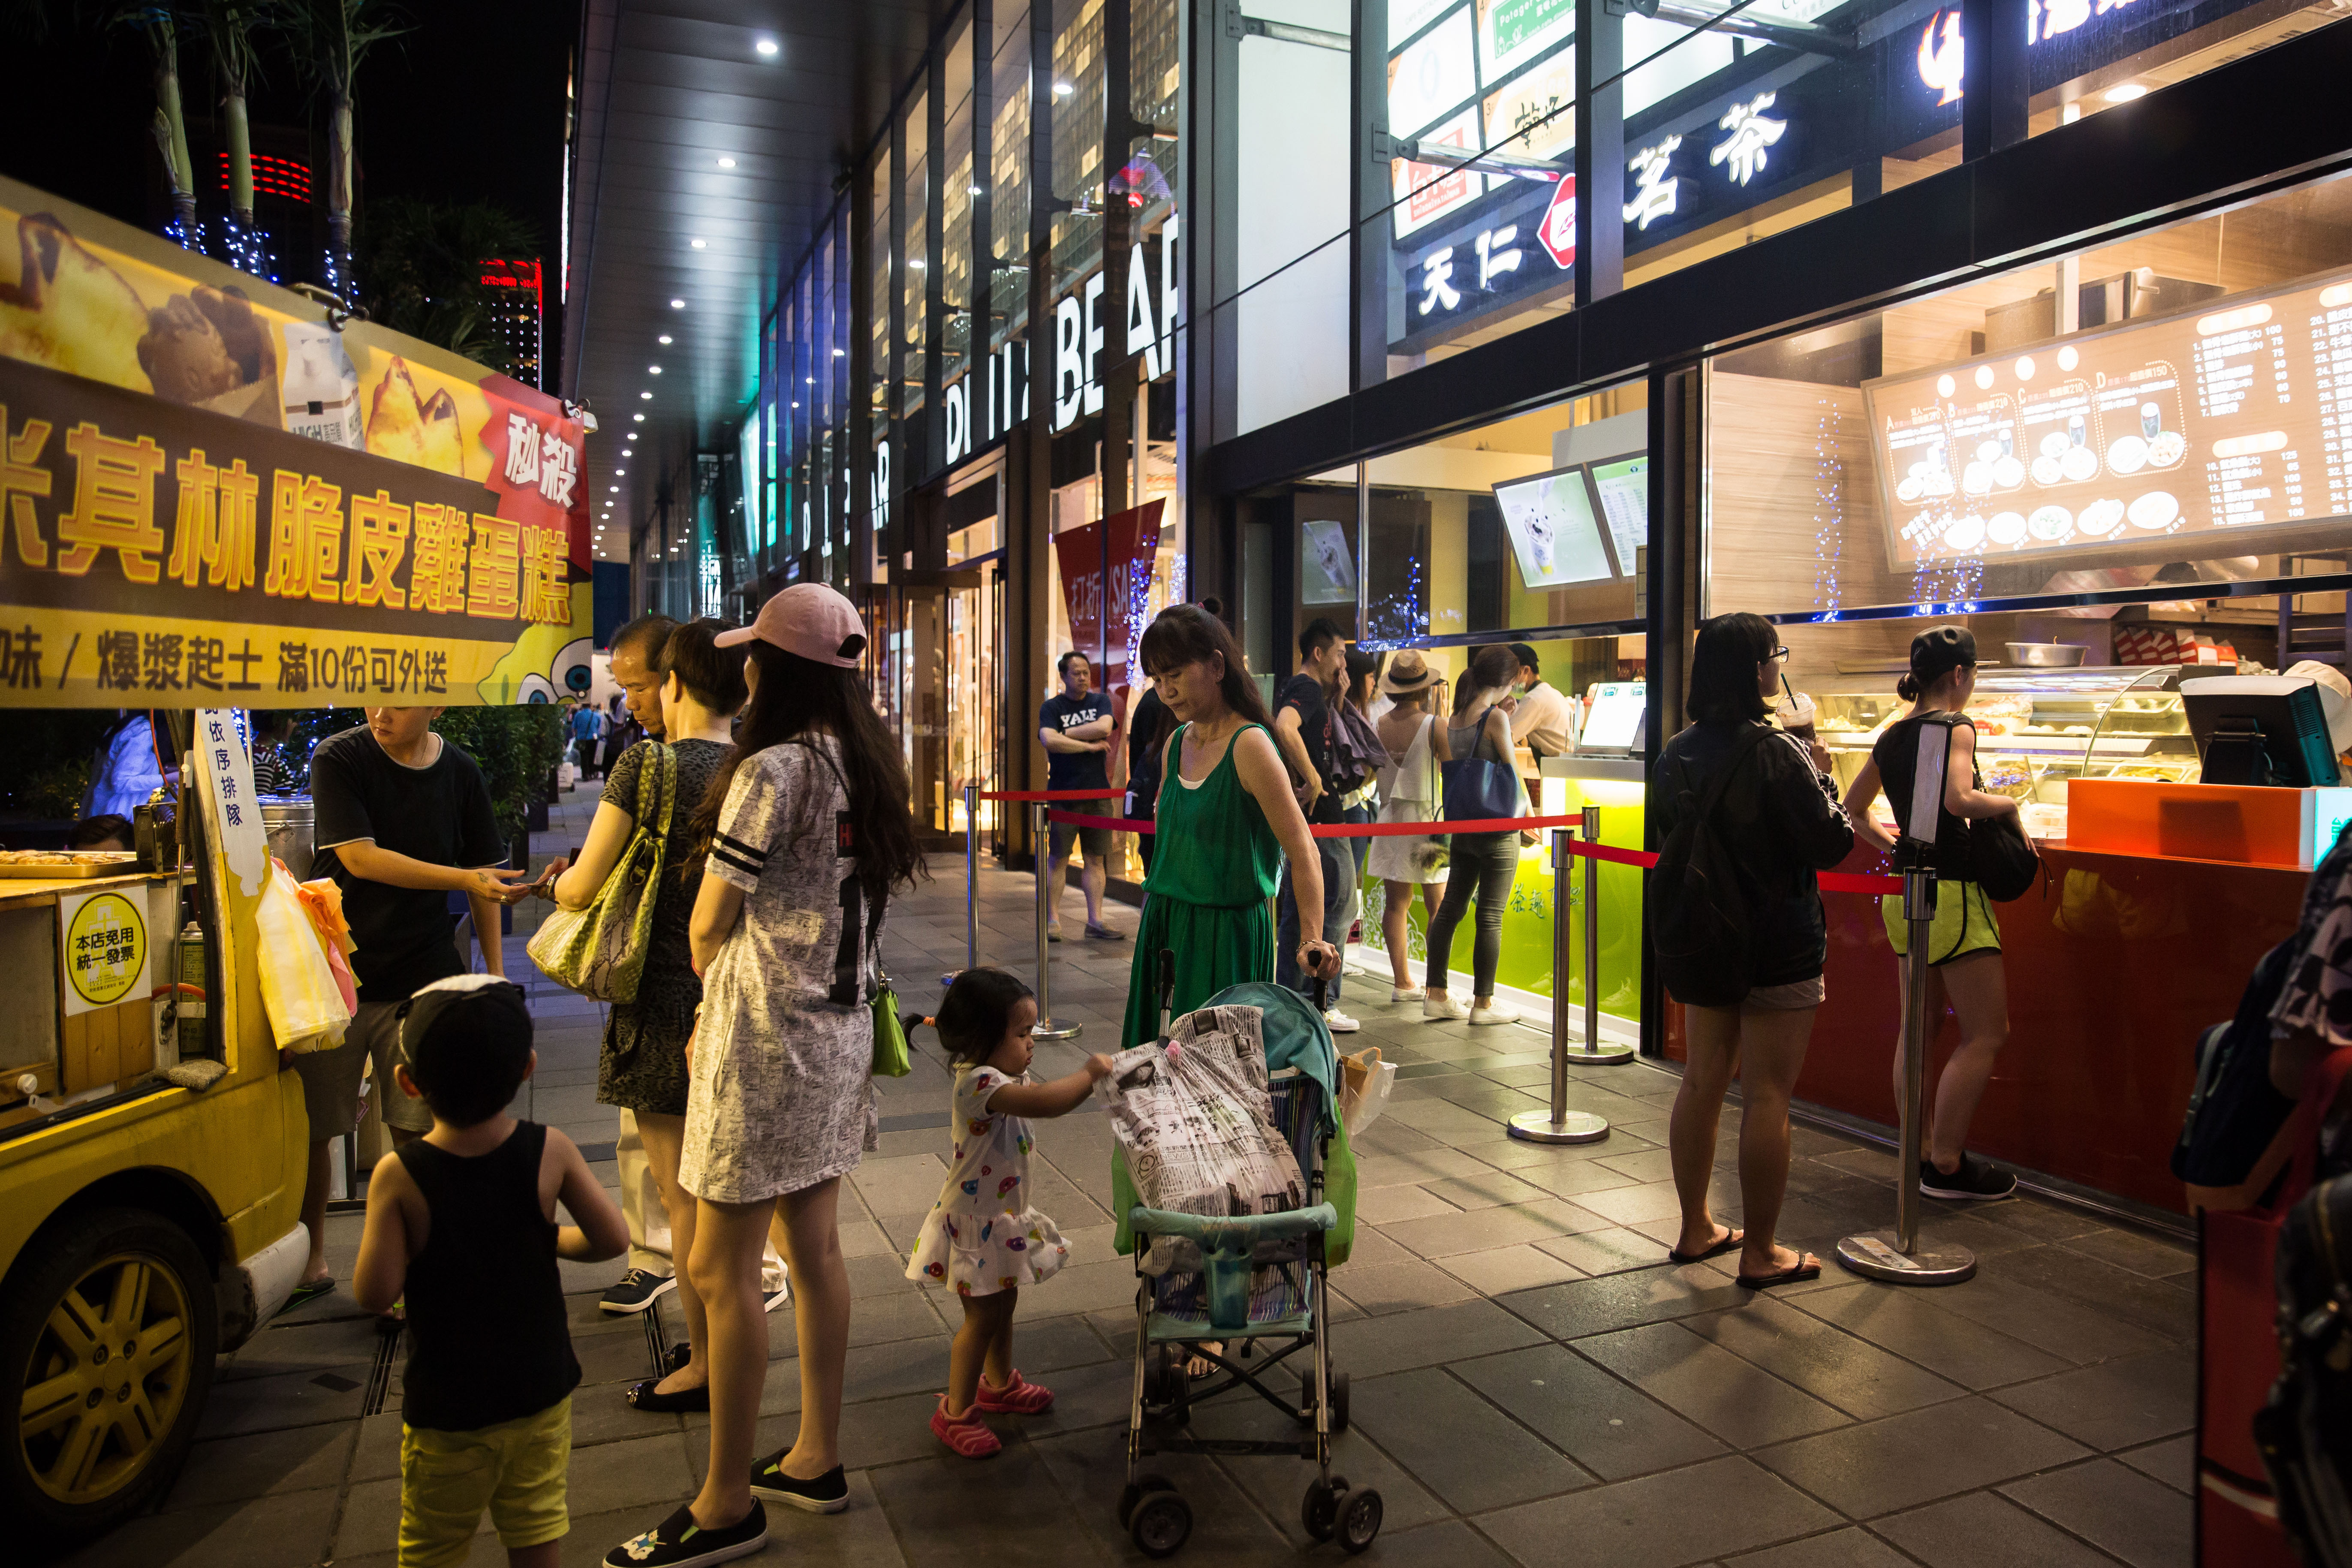 Pedestrians and shoppers wait at food stalls and stores in Taipei, Taiwan, on July 16, 2016. MUST CREDIT: Bloomberg photo by Billy H.C. Kwok.